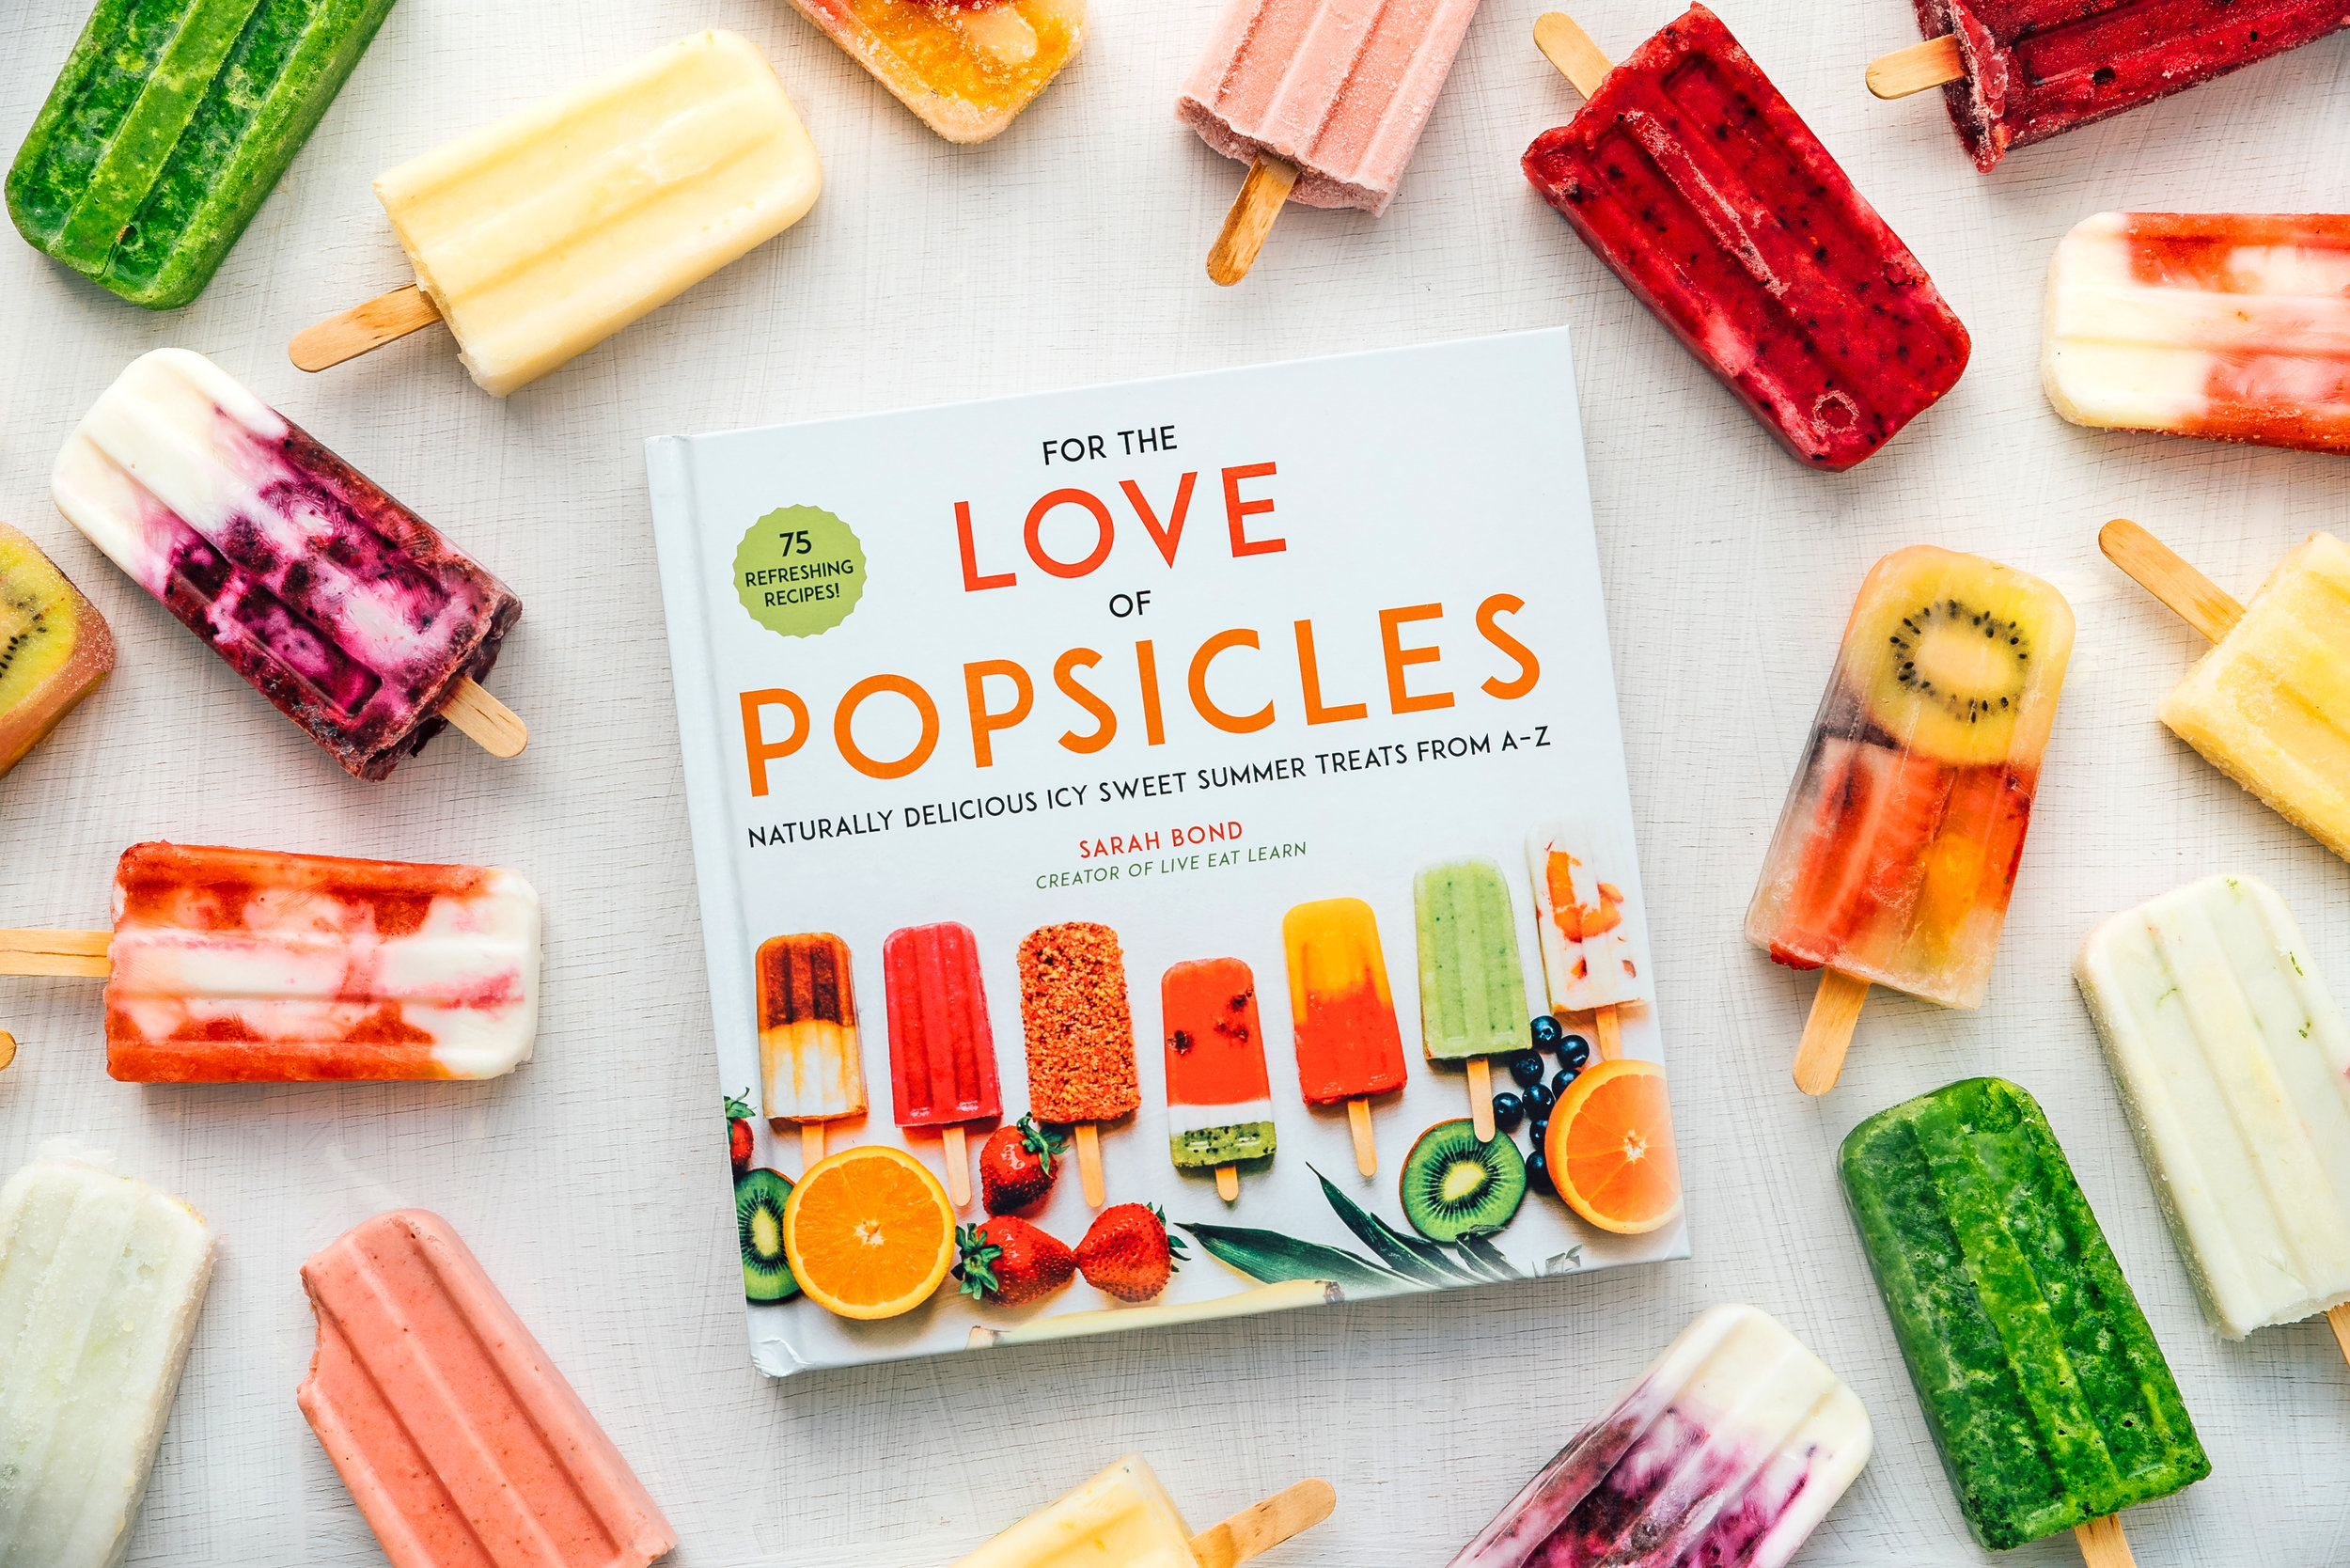 Sarah-bond-for-the-love-of-popsicles-cookbook-.jpg